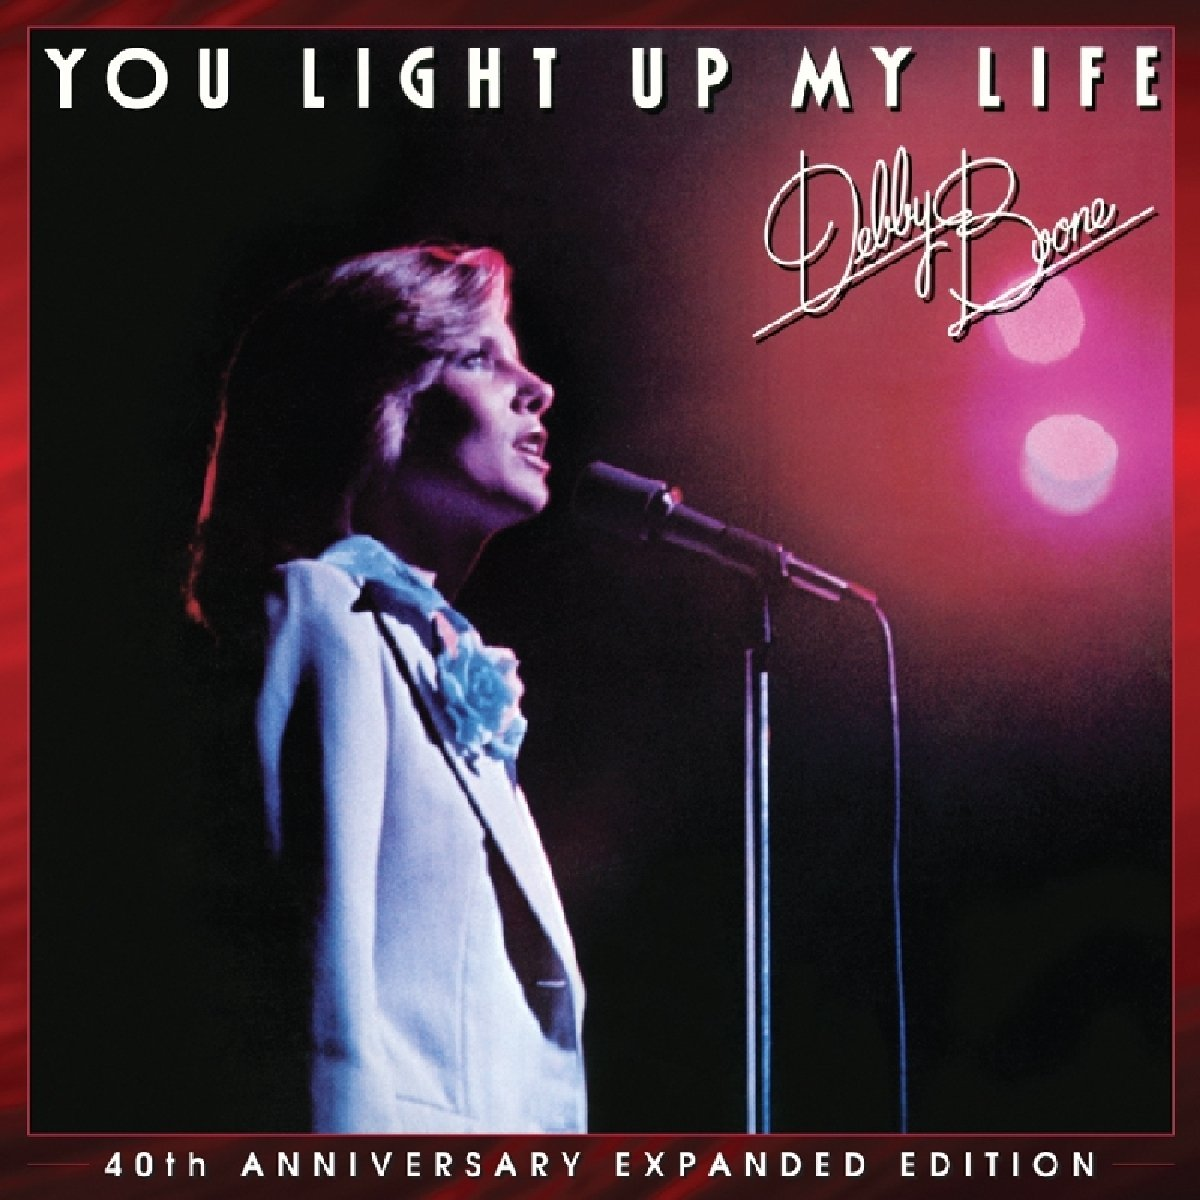 Debby Boone - You Light Up My Life 40th Anniversary Expanded Edition (Anniversary Edition, Expanded Version)